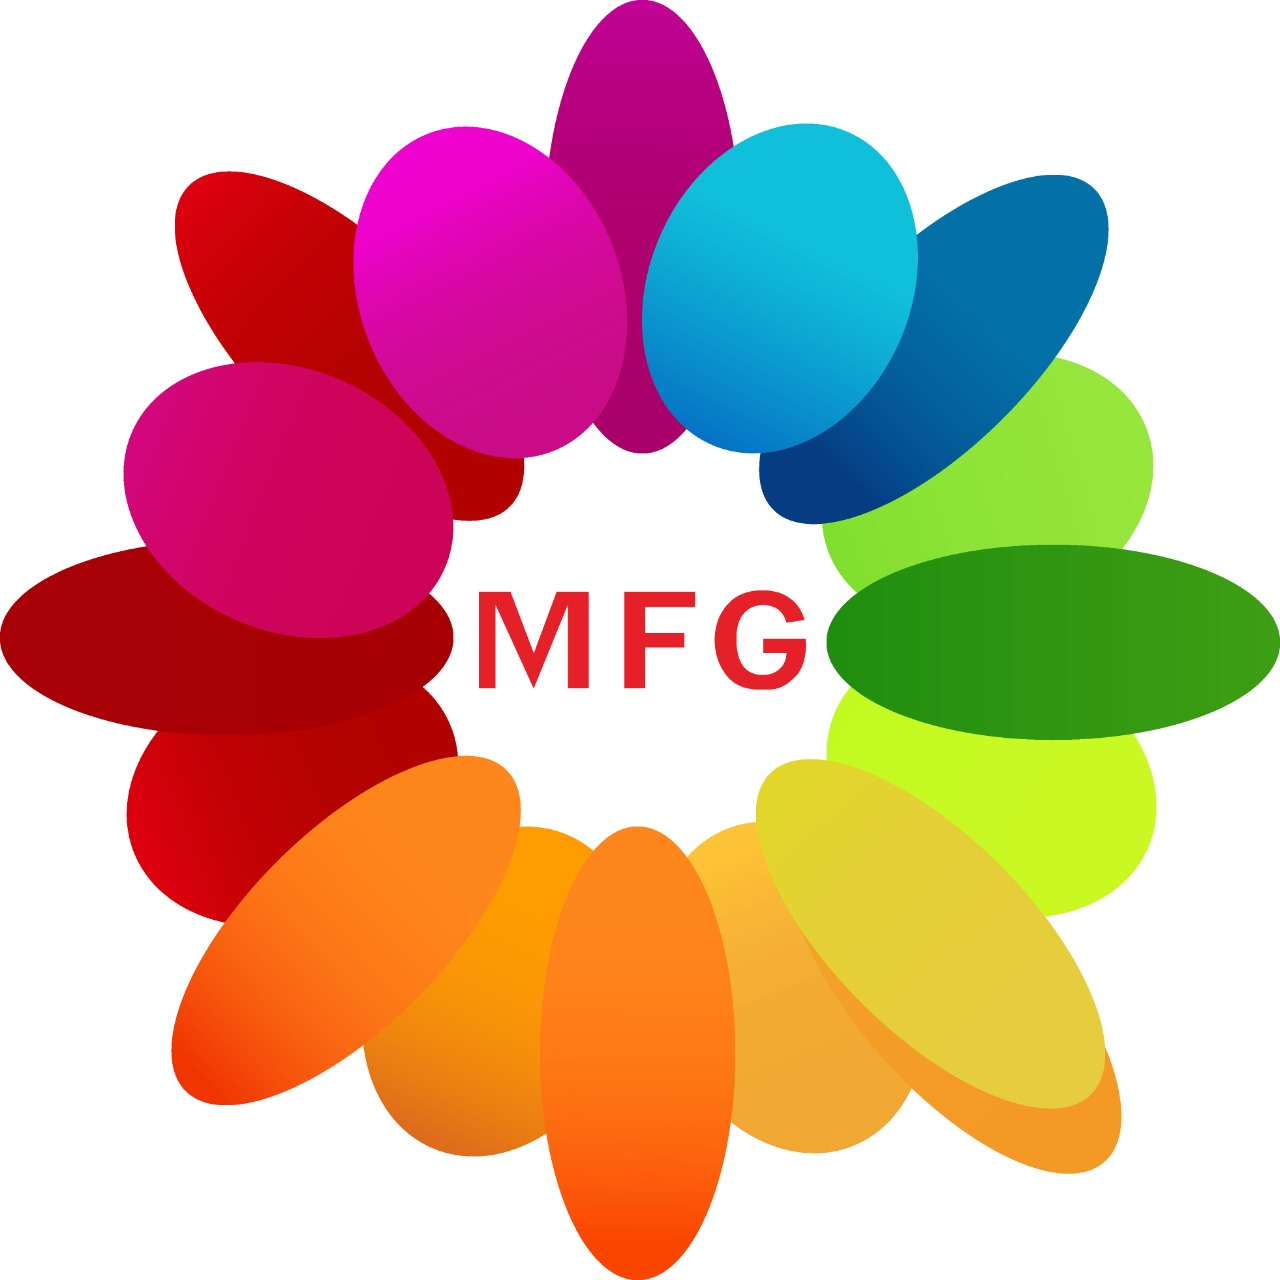 1 kg black forest cake(eggless) with 1 kg assorted dry fruits